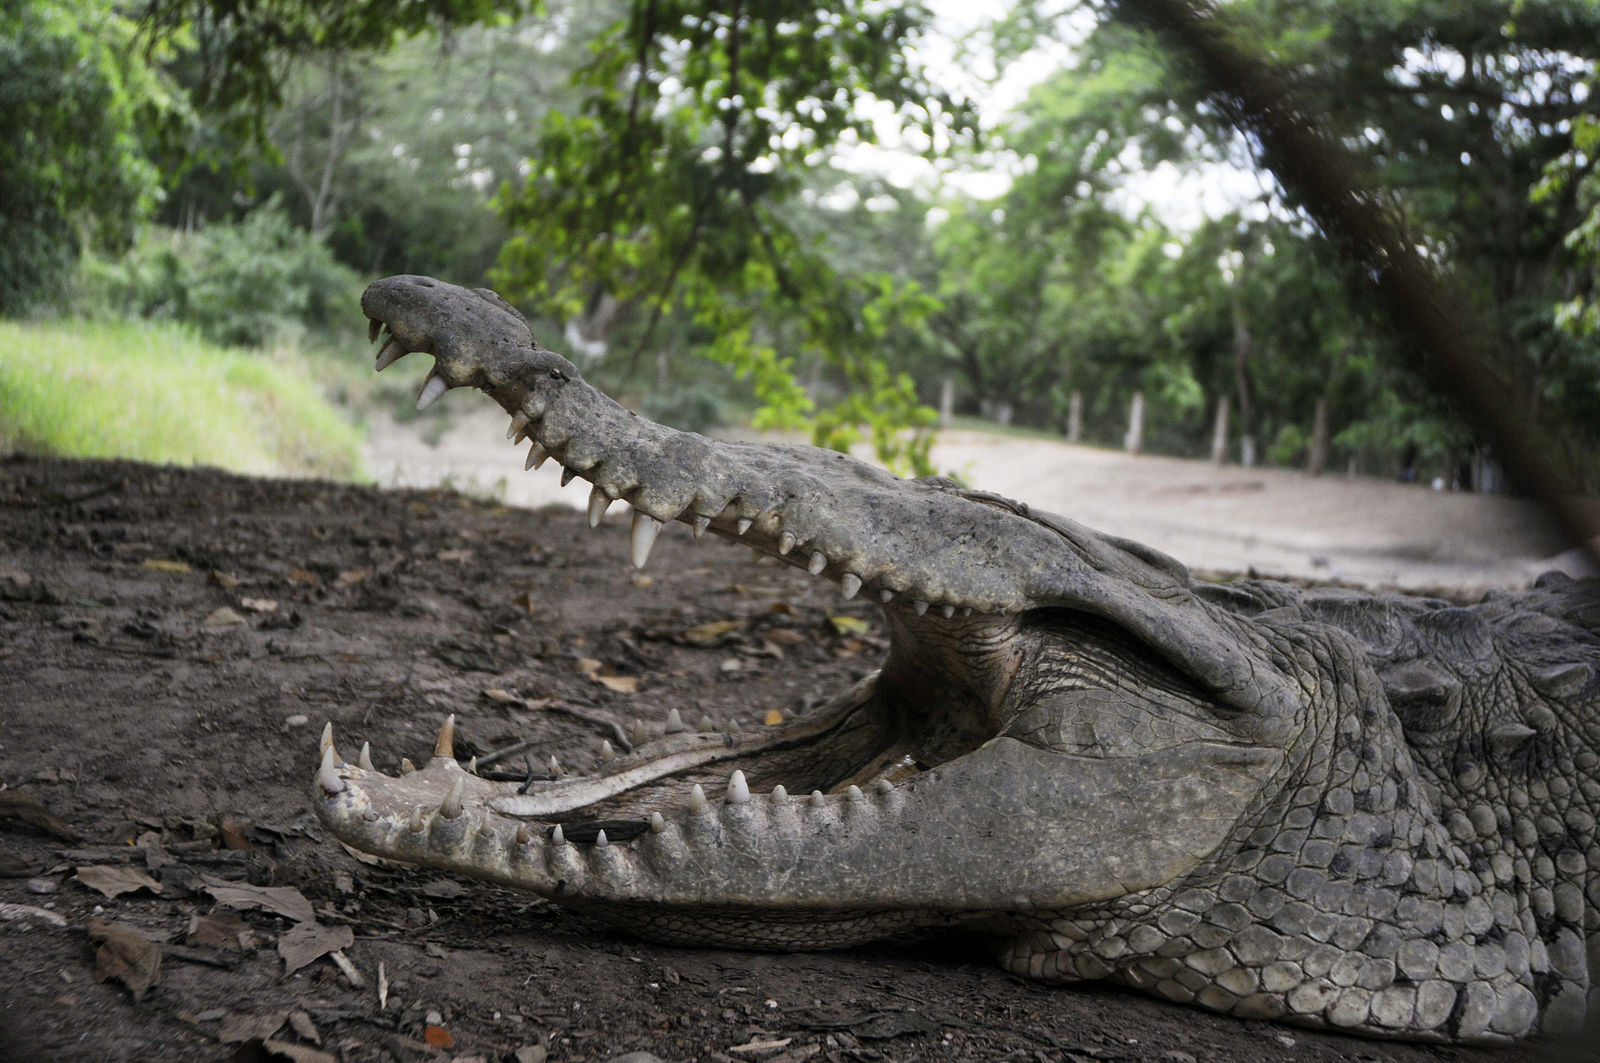 FILE - A crocodile opens its mouth as it lies on a mud bank at a farm in northern Honduras, Wednesday, Nov. 4, 2015. (AP Photo/Fernando Antonio)